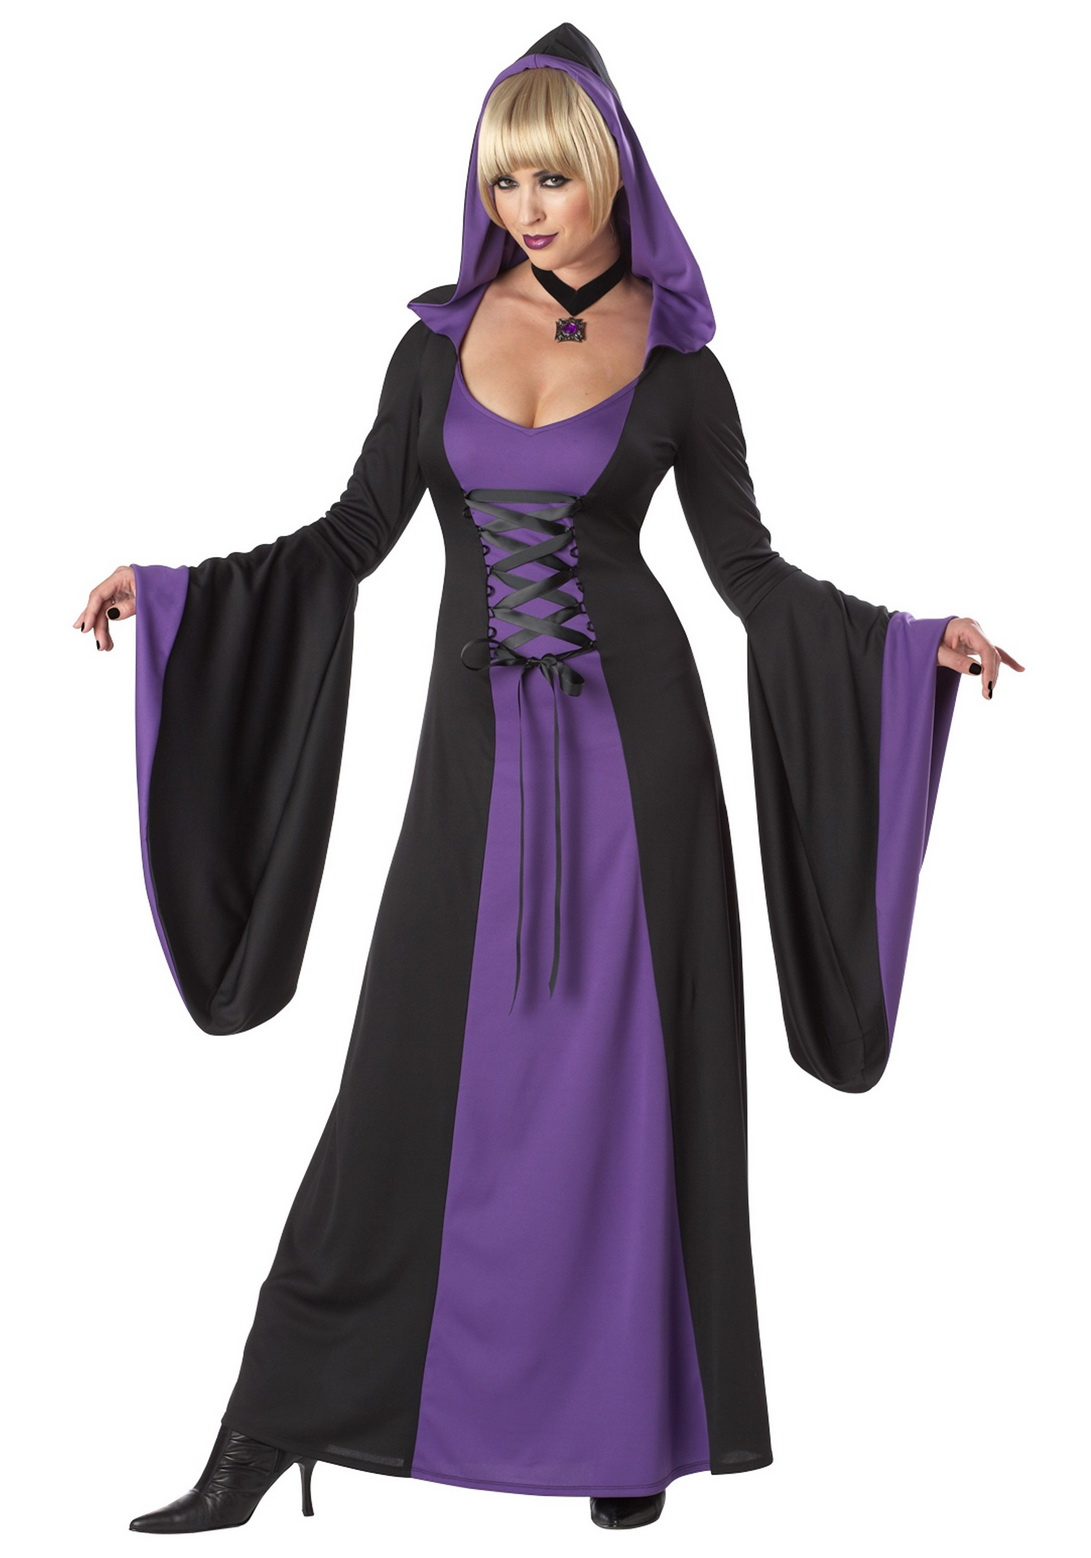 Adult Deluxe Purple Hooded Robe